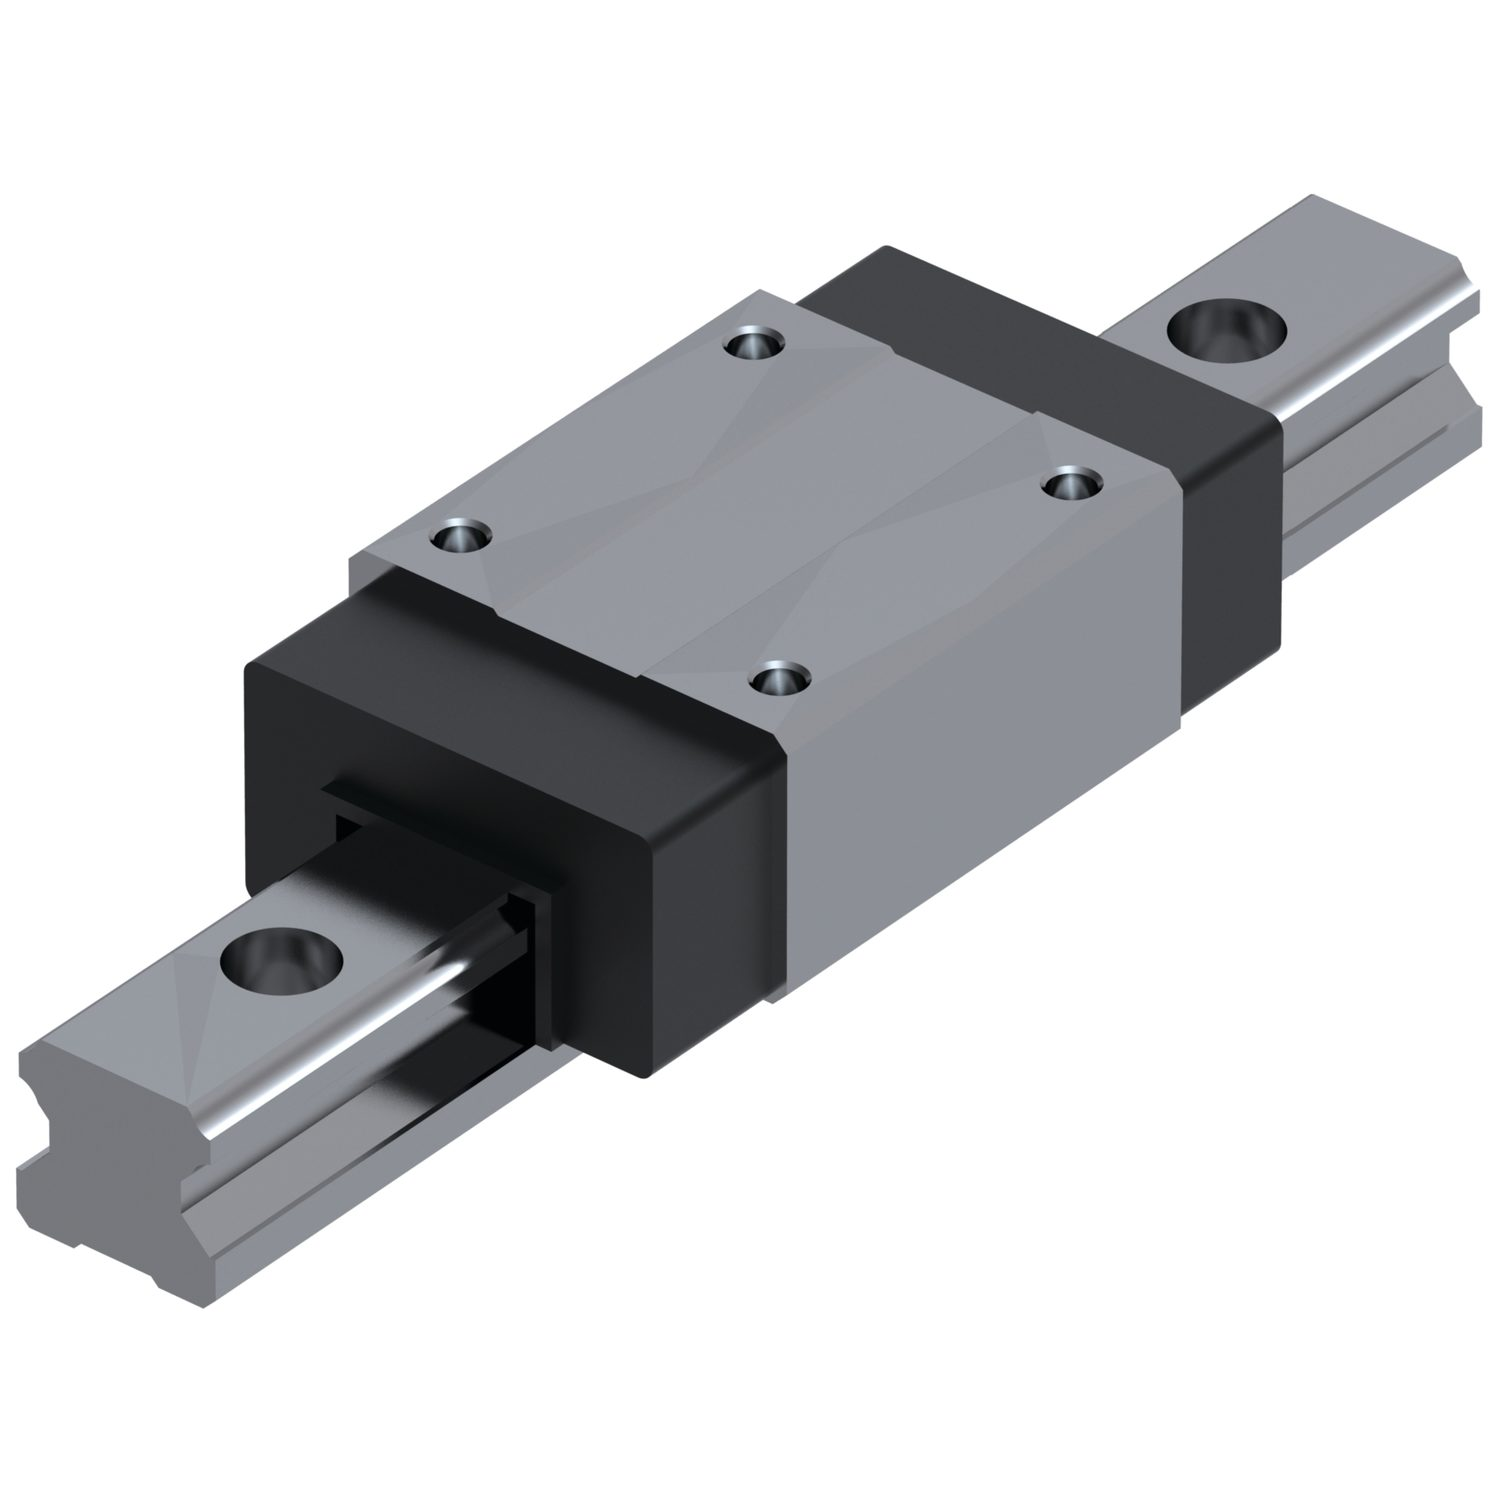 Unflanged Carriages - Standard Unflanged carriages for linear guideways.